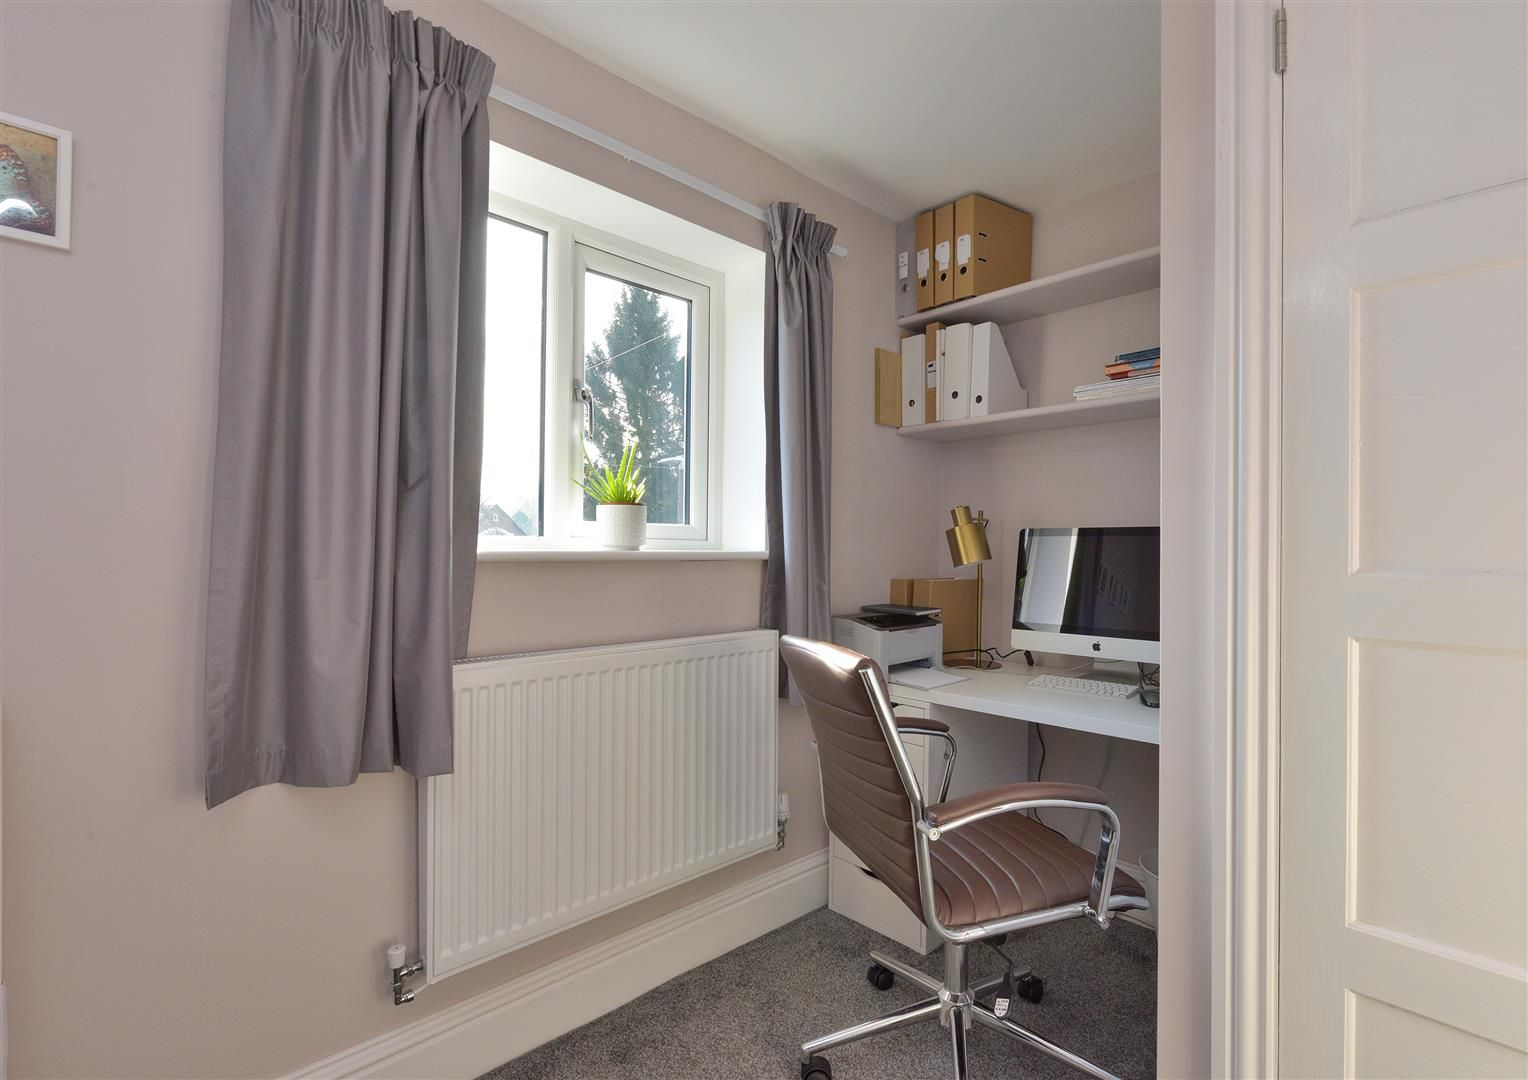 3 bed house for sale in Clent  - Property Image 17